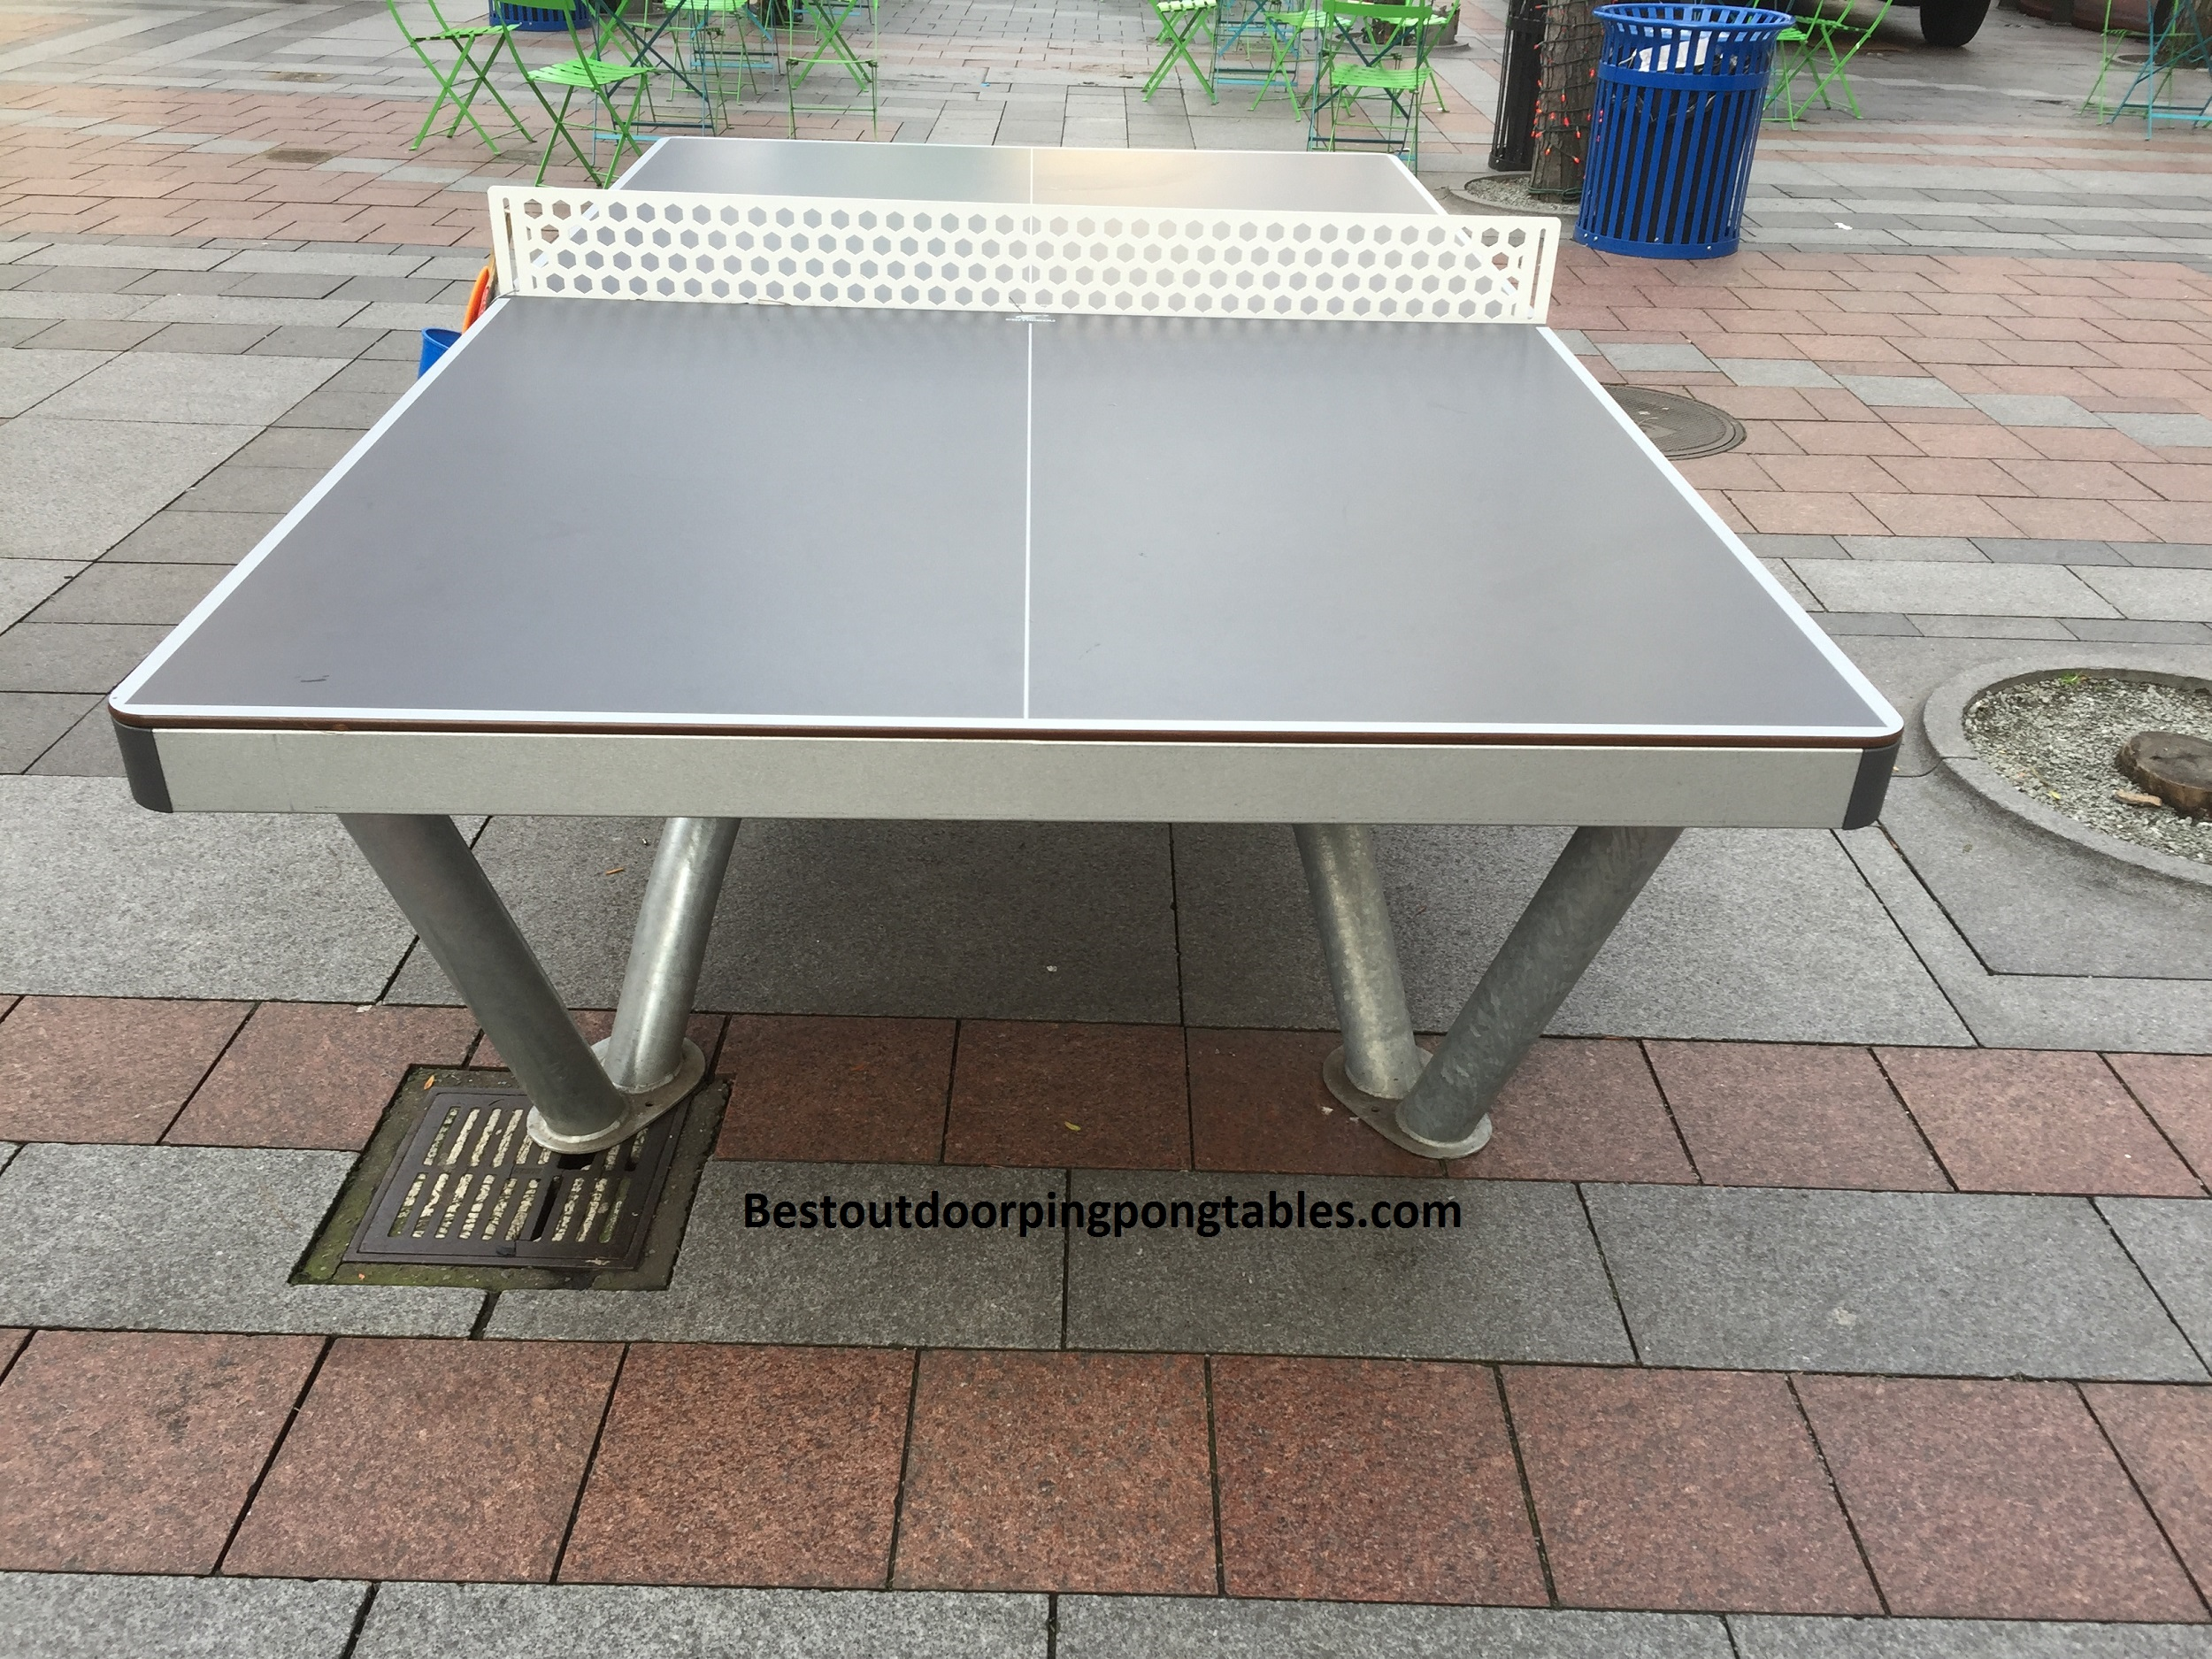 Cornilleau Park Weatherproof Ping Pong Table